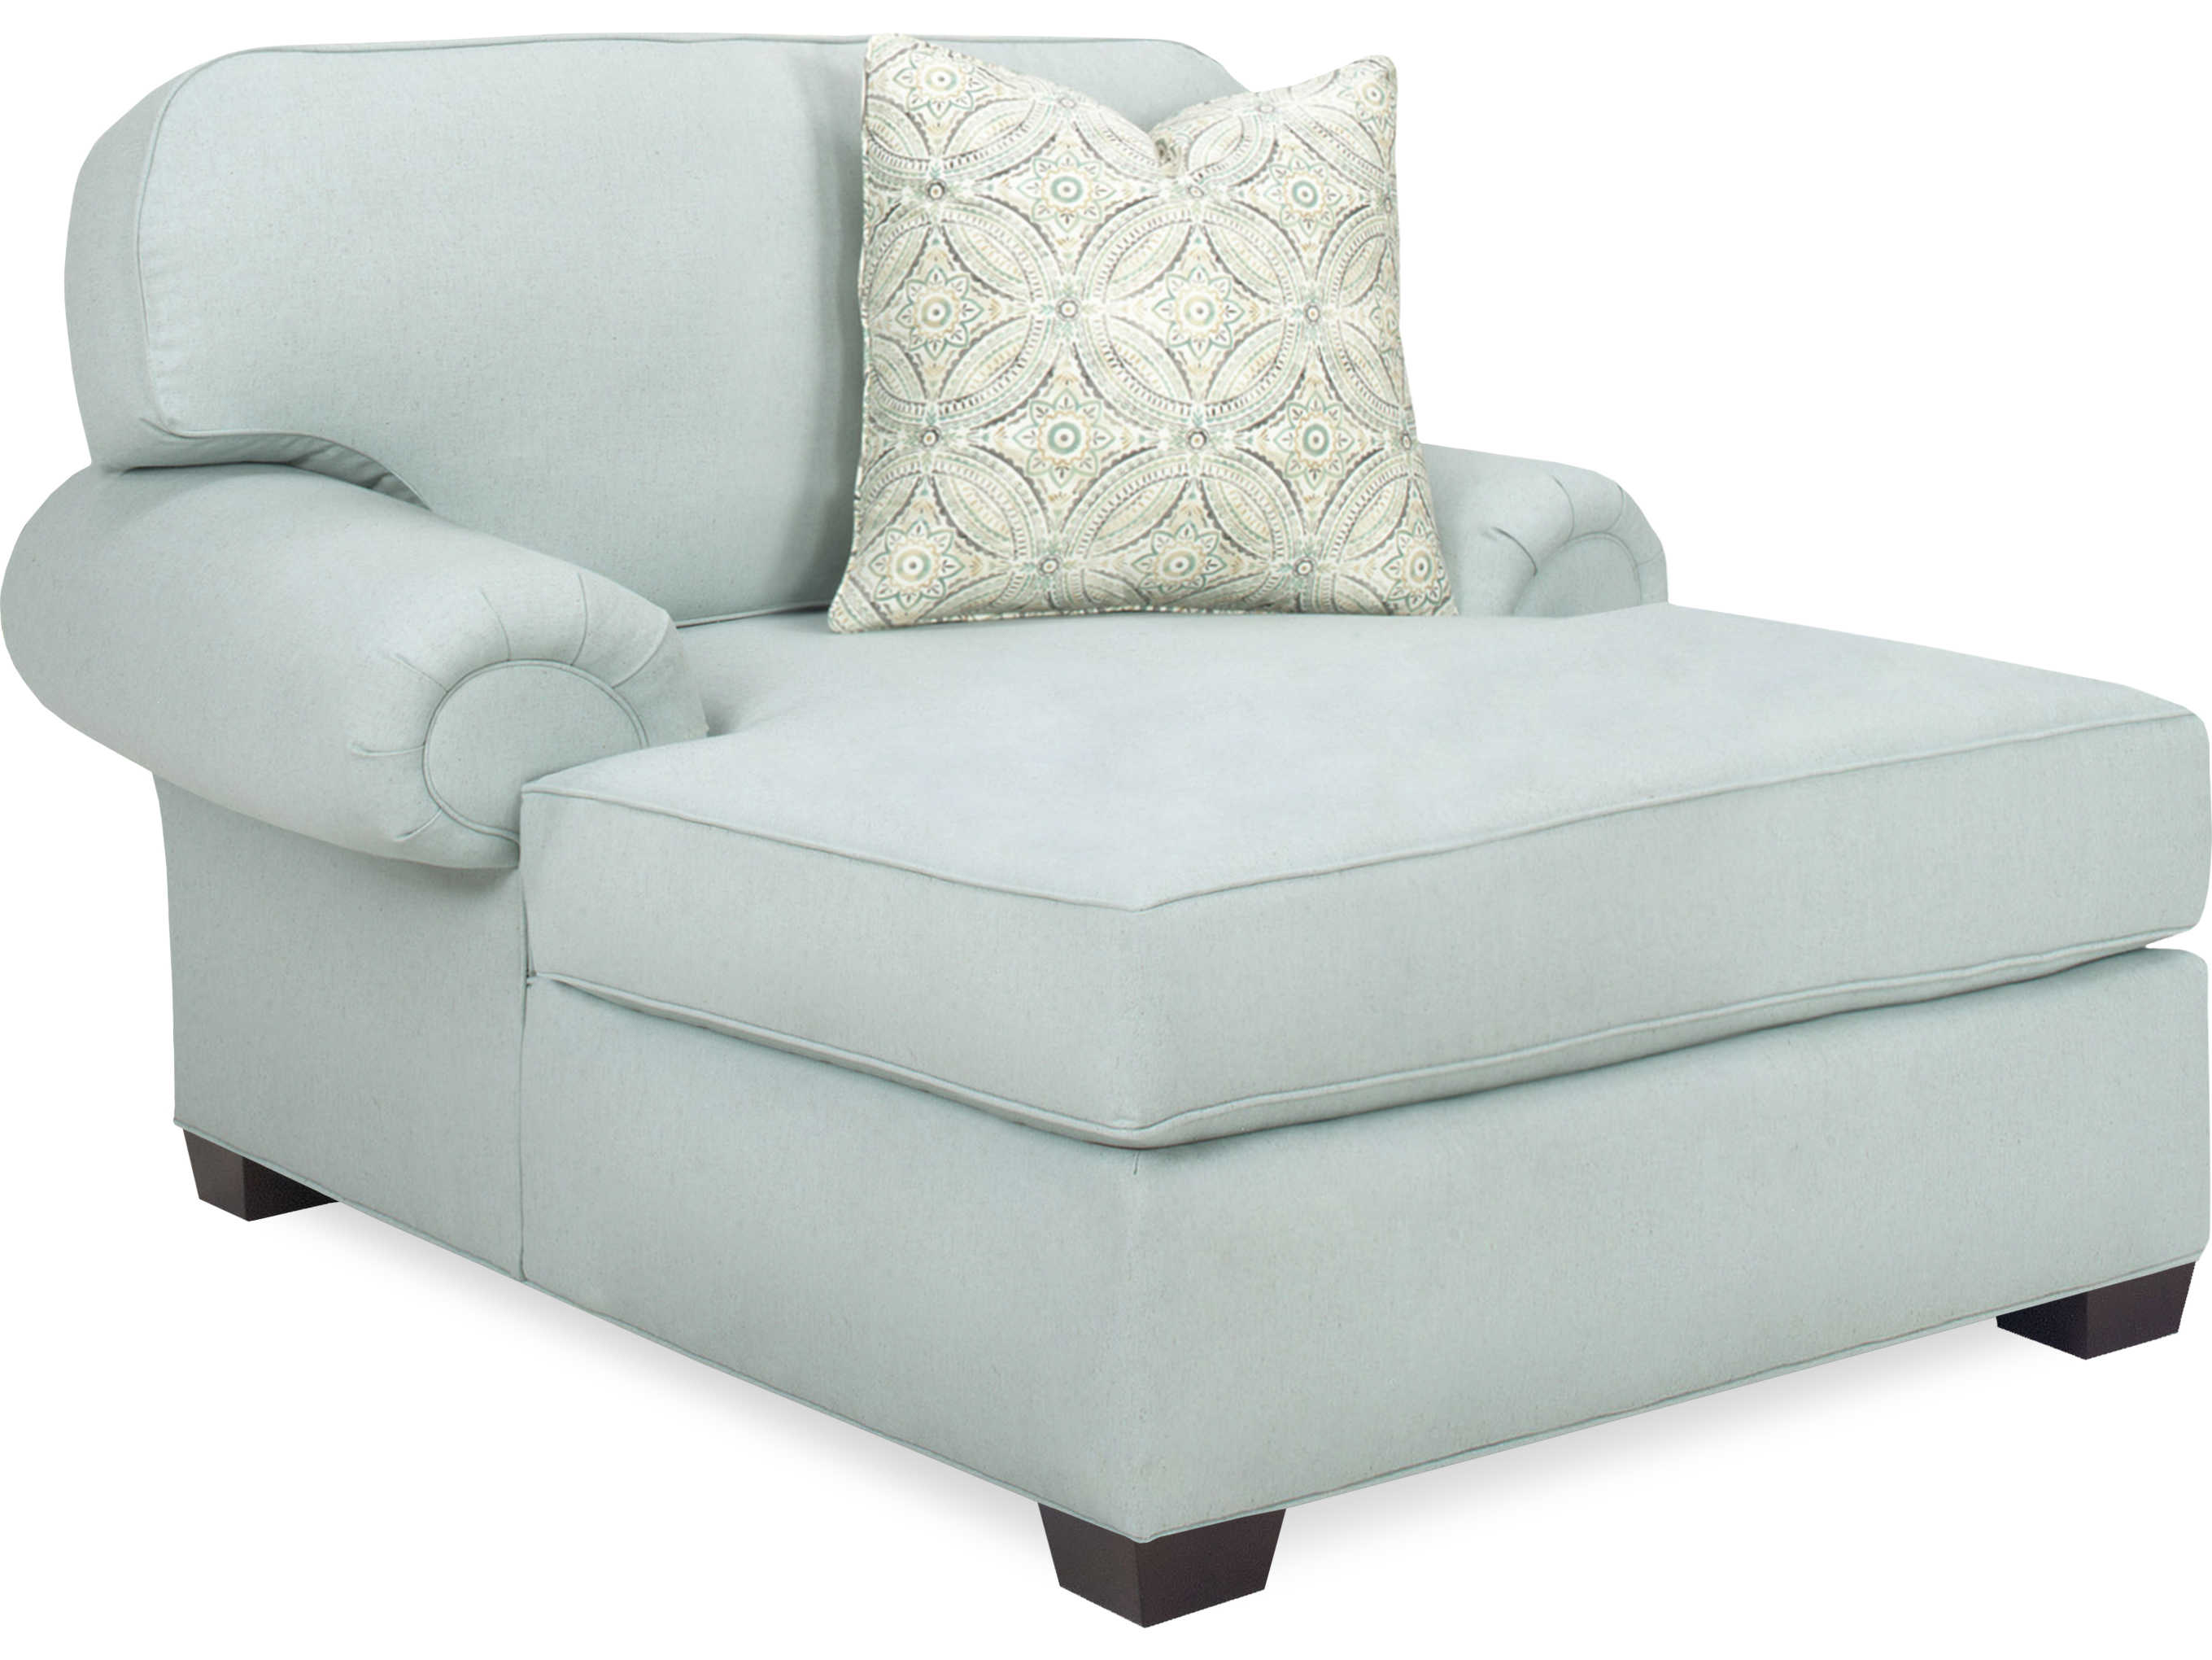 Picture of: Temple Furniture Comfy Chaise Lounge Chair Tmf3104